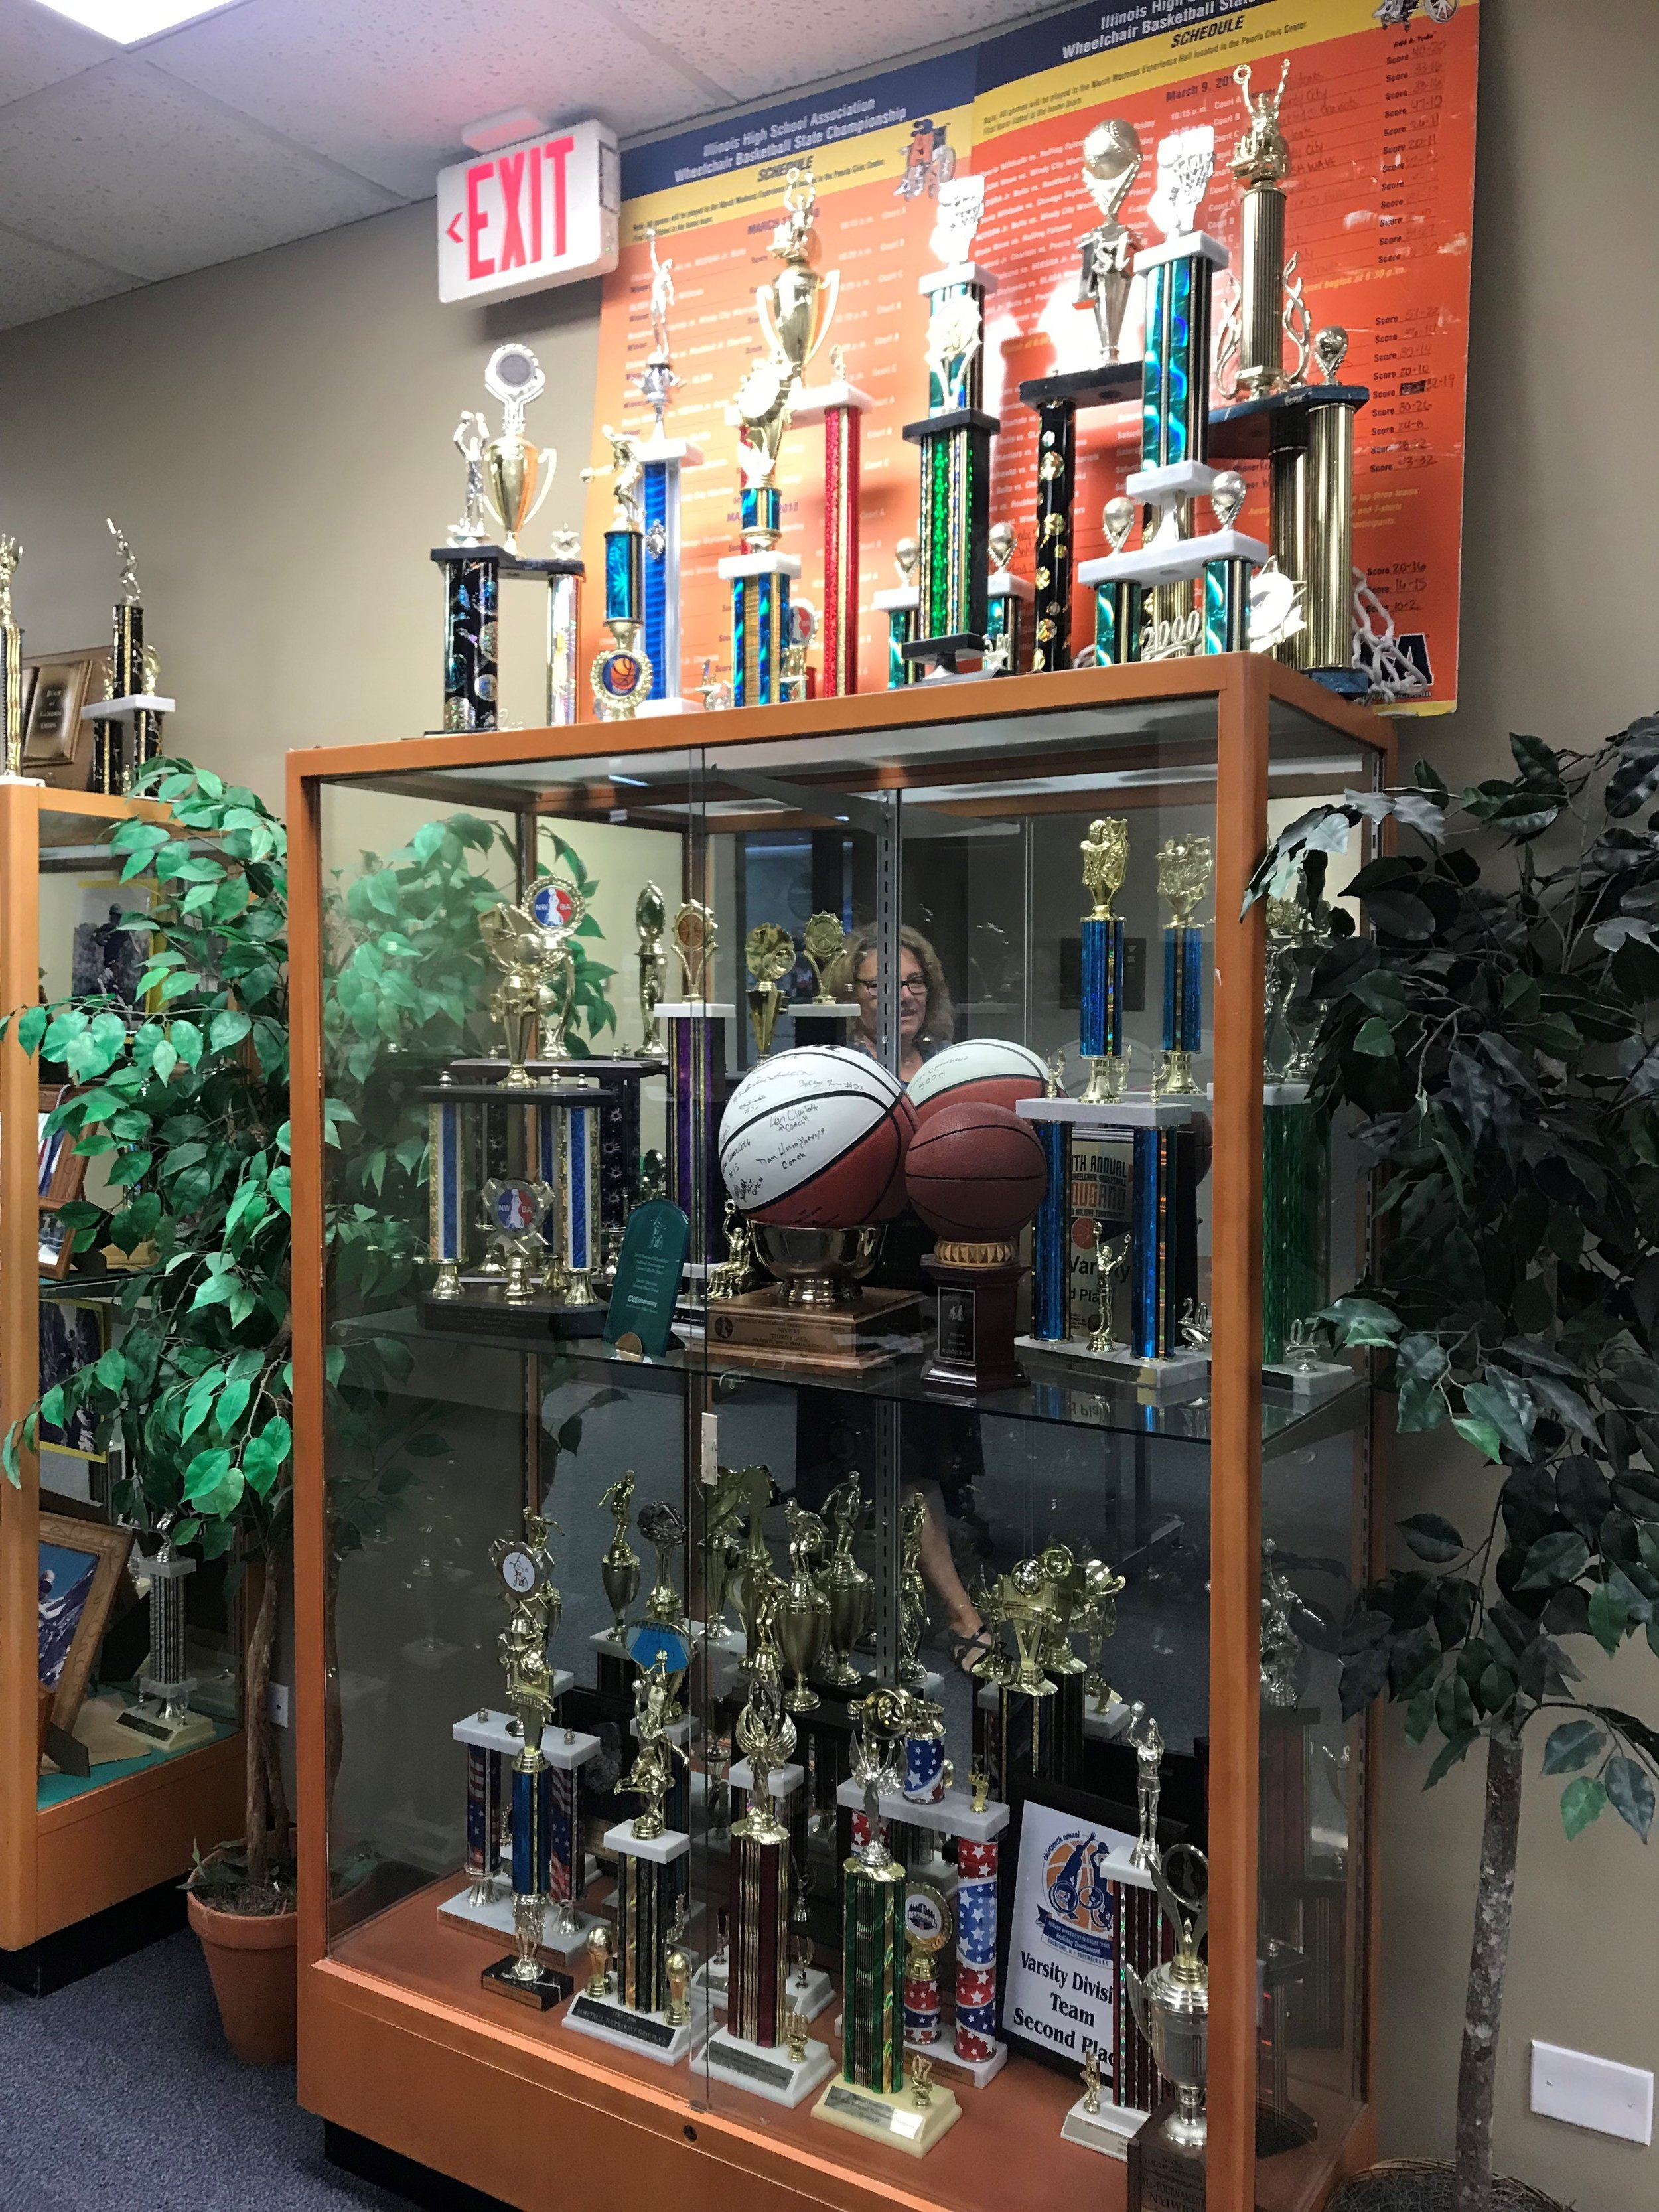 A trophy case at the WDSRA office illustrates the success of its athletic programs